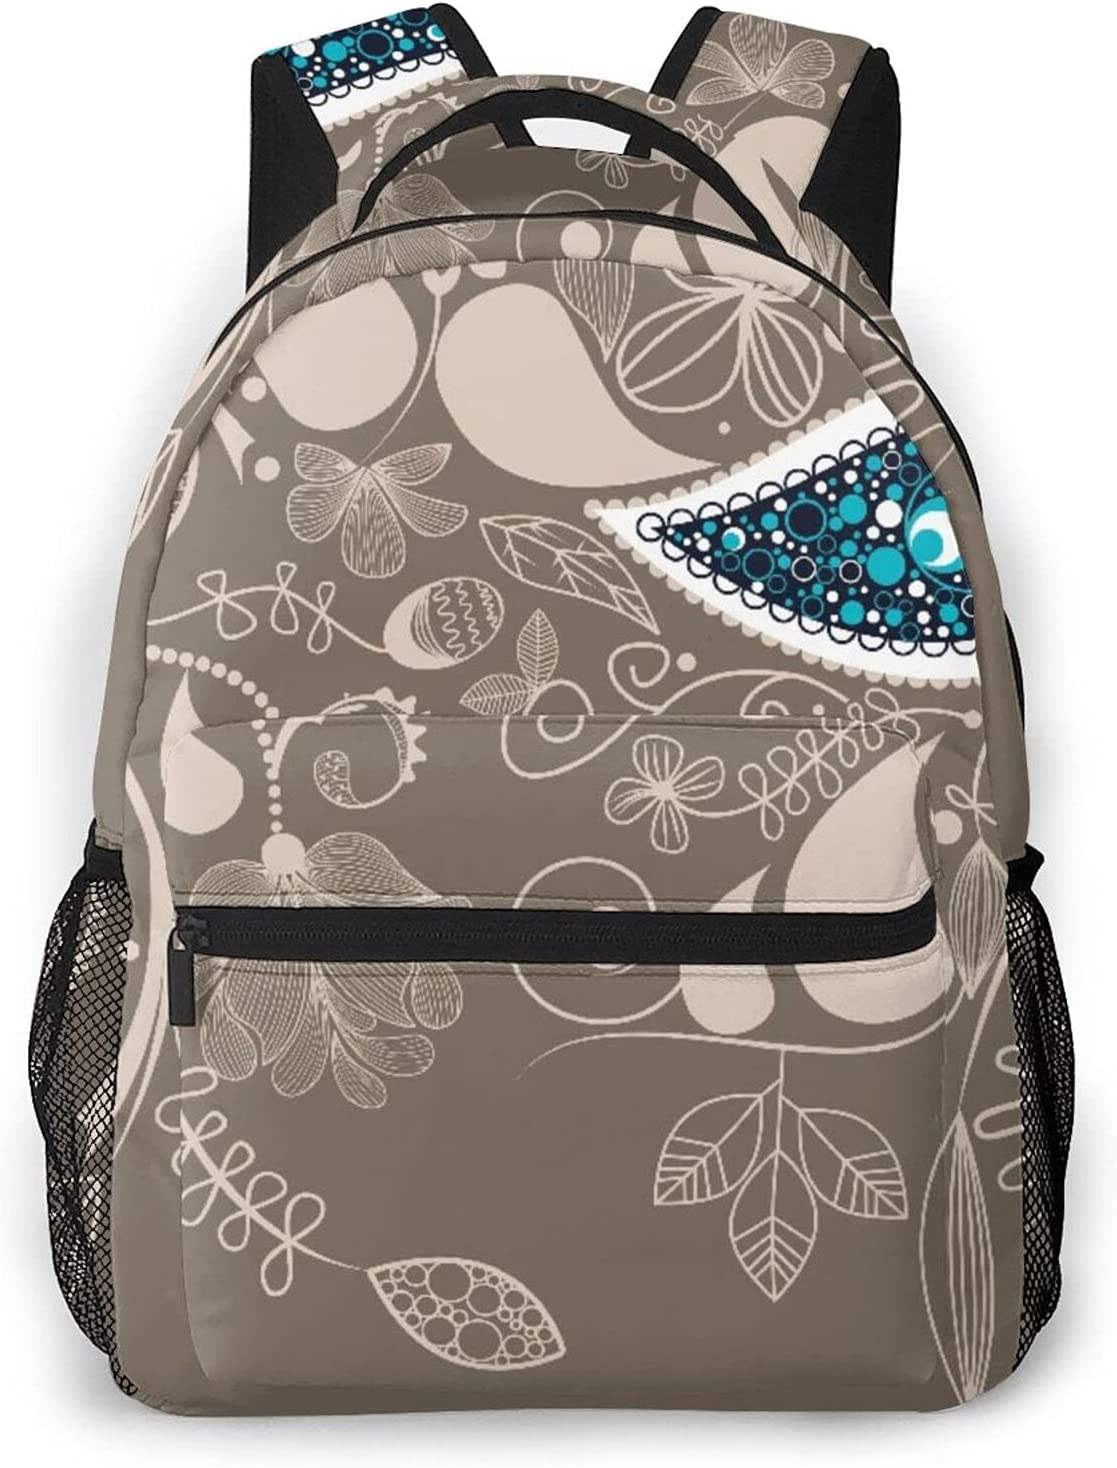 Casual Backpack Motifs With Inexpensive Swirled Flower And Boh Rare Branch Ethnic